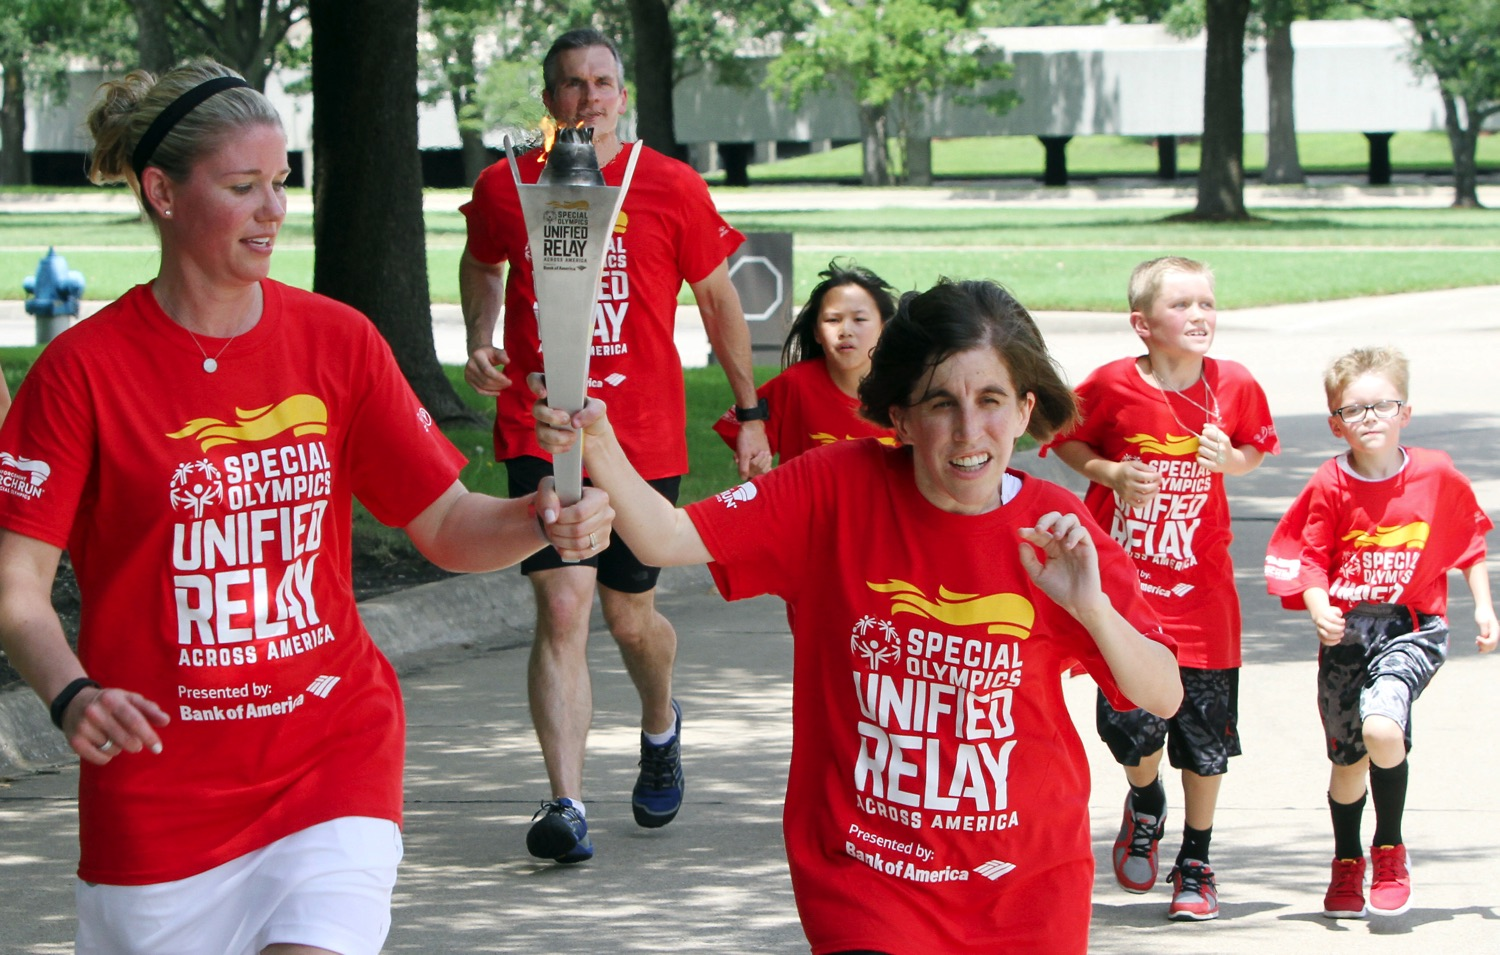 Plano-TX-Special-Olympics-torch-run-Relay5-05